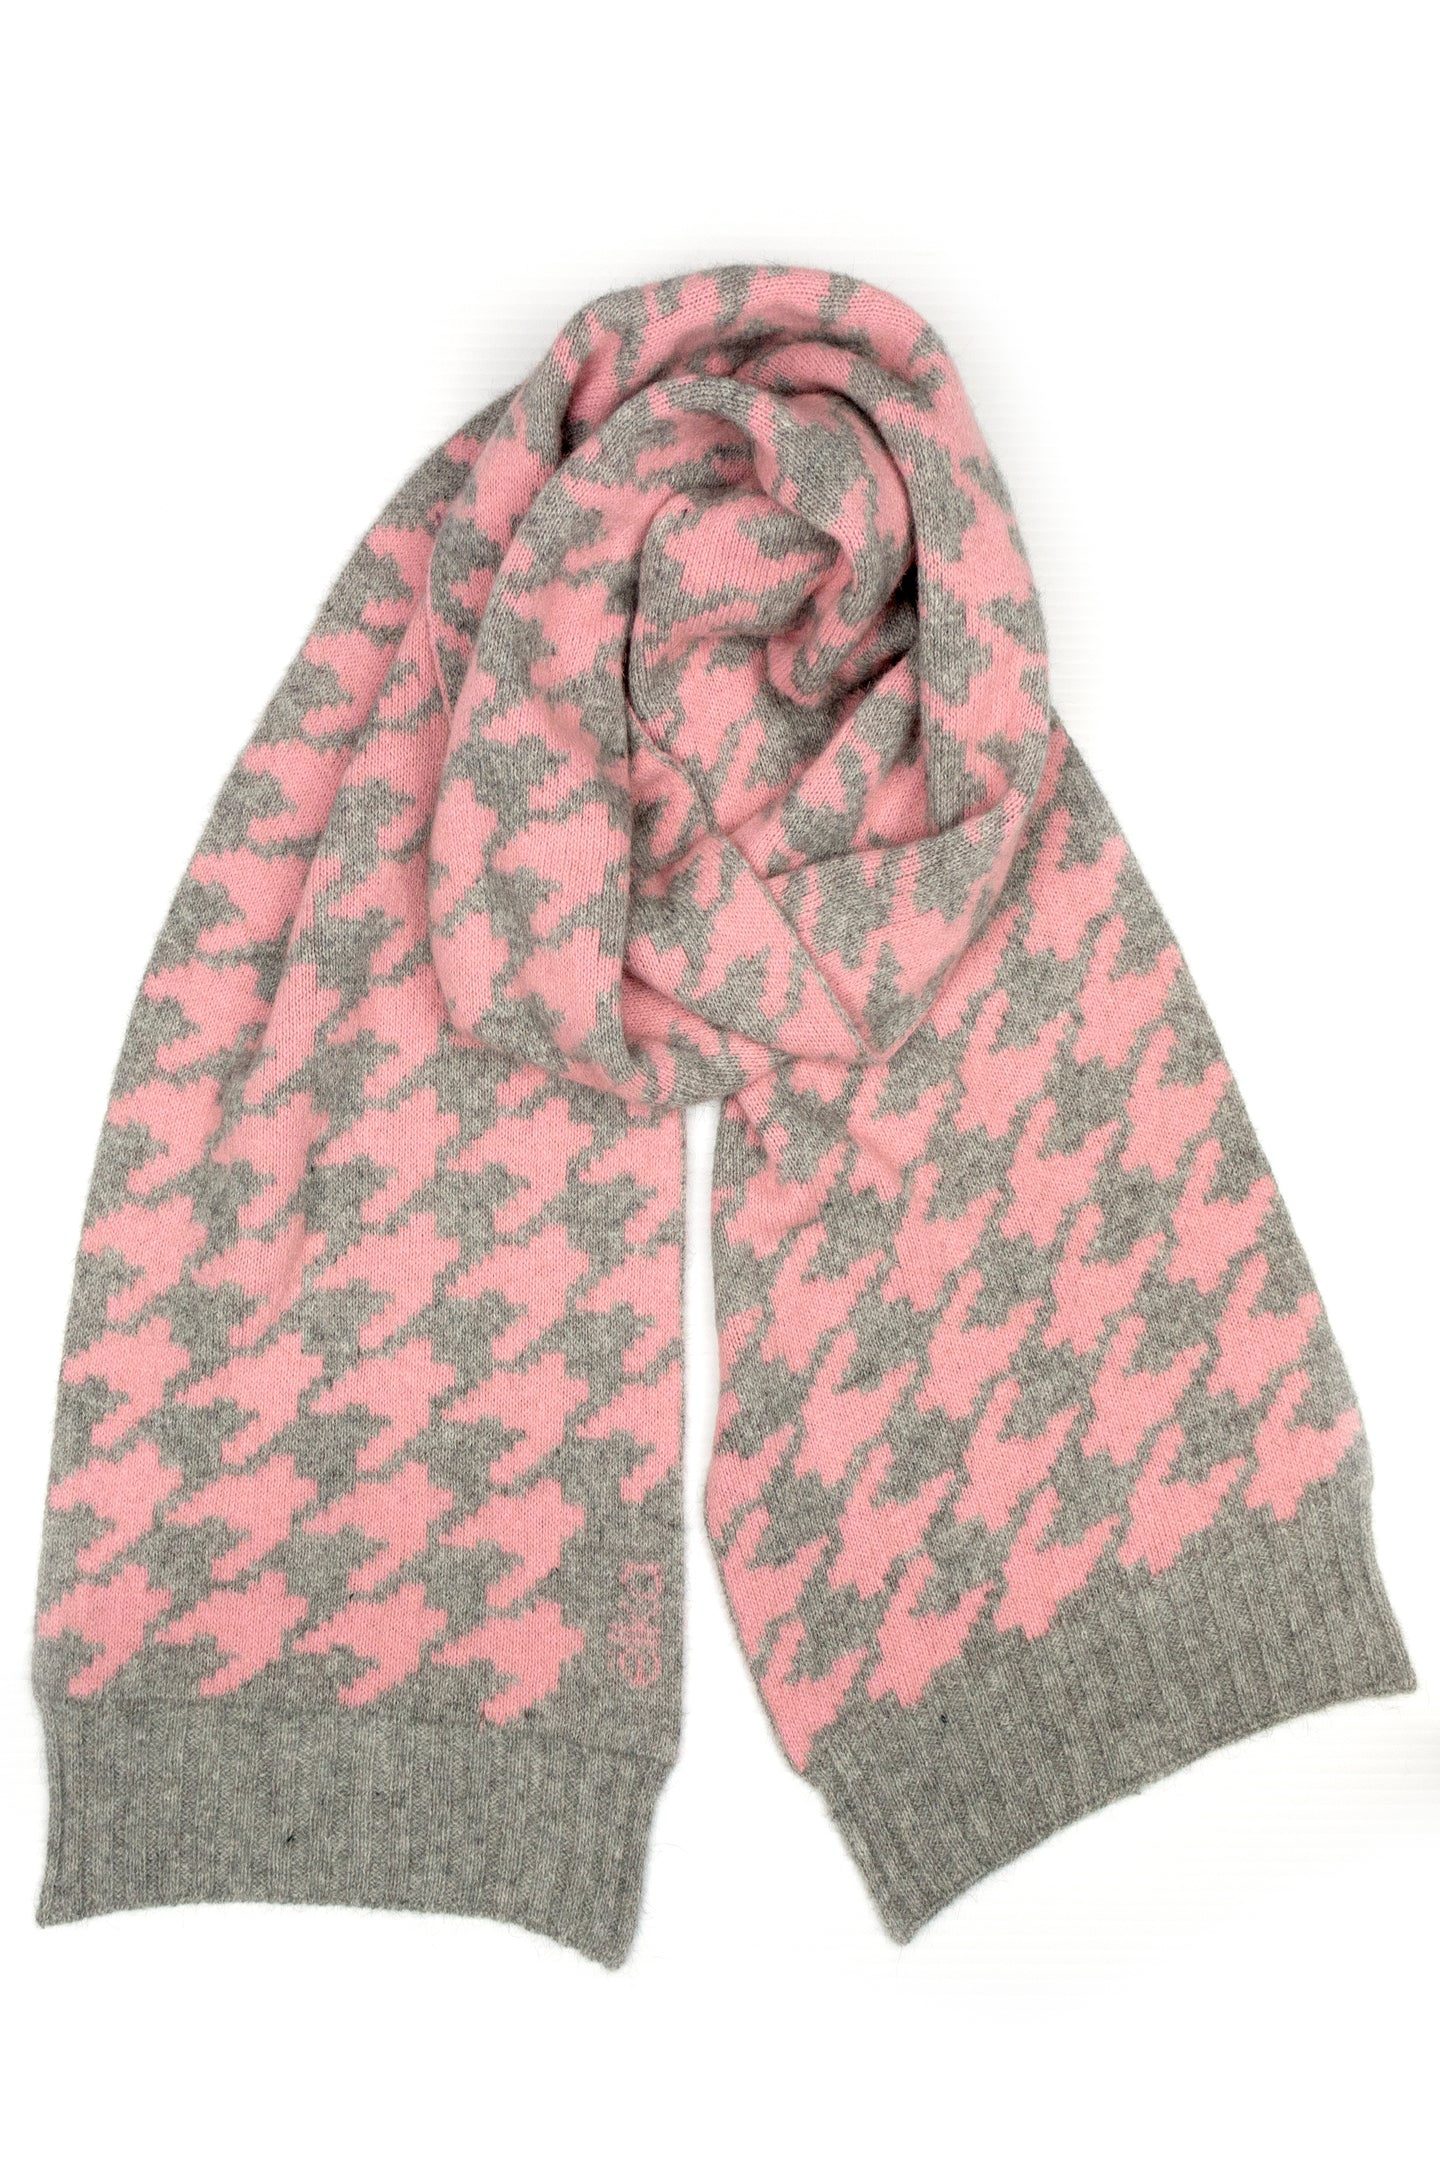 Possum Silk Merino Houndstooth Scarf in Grey Marl and Pearl